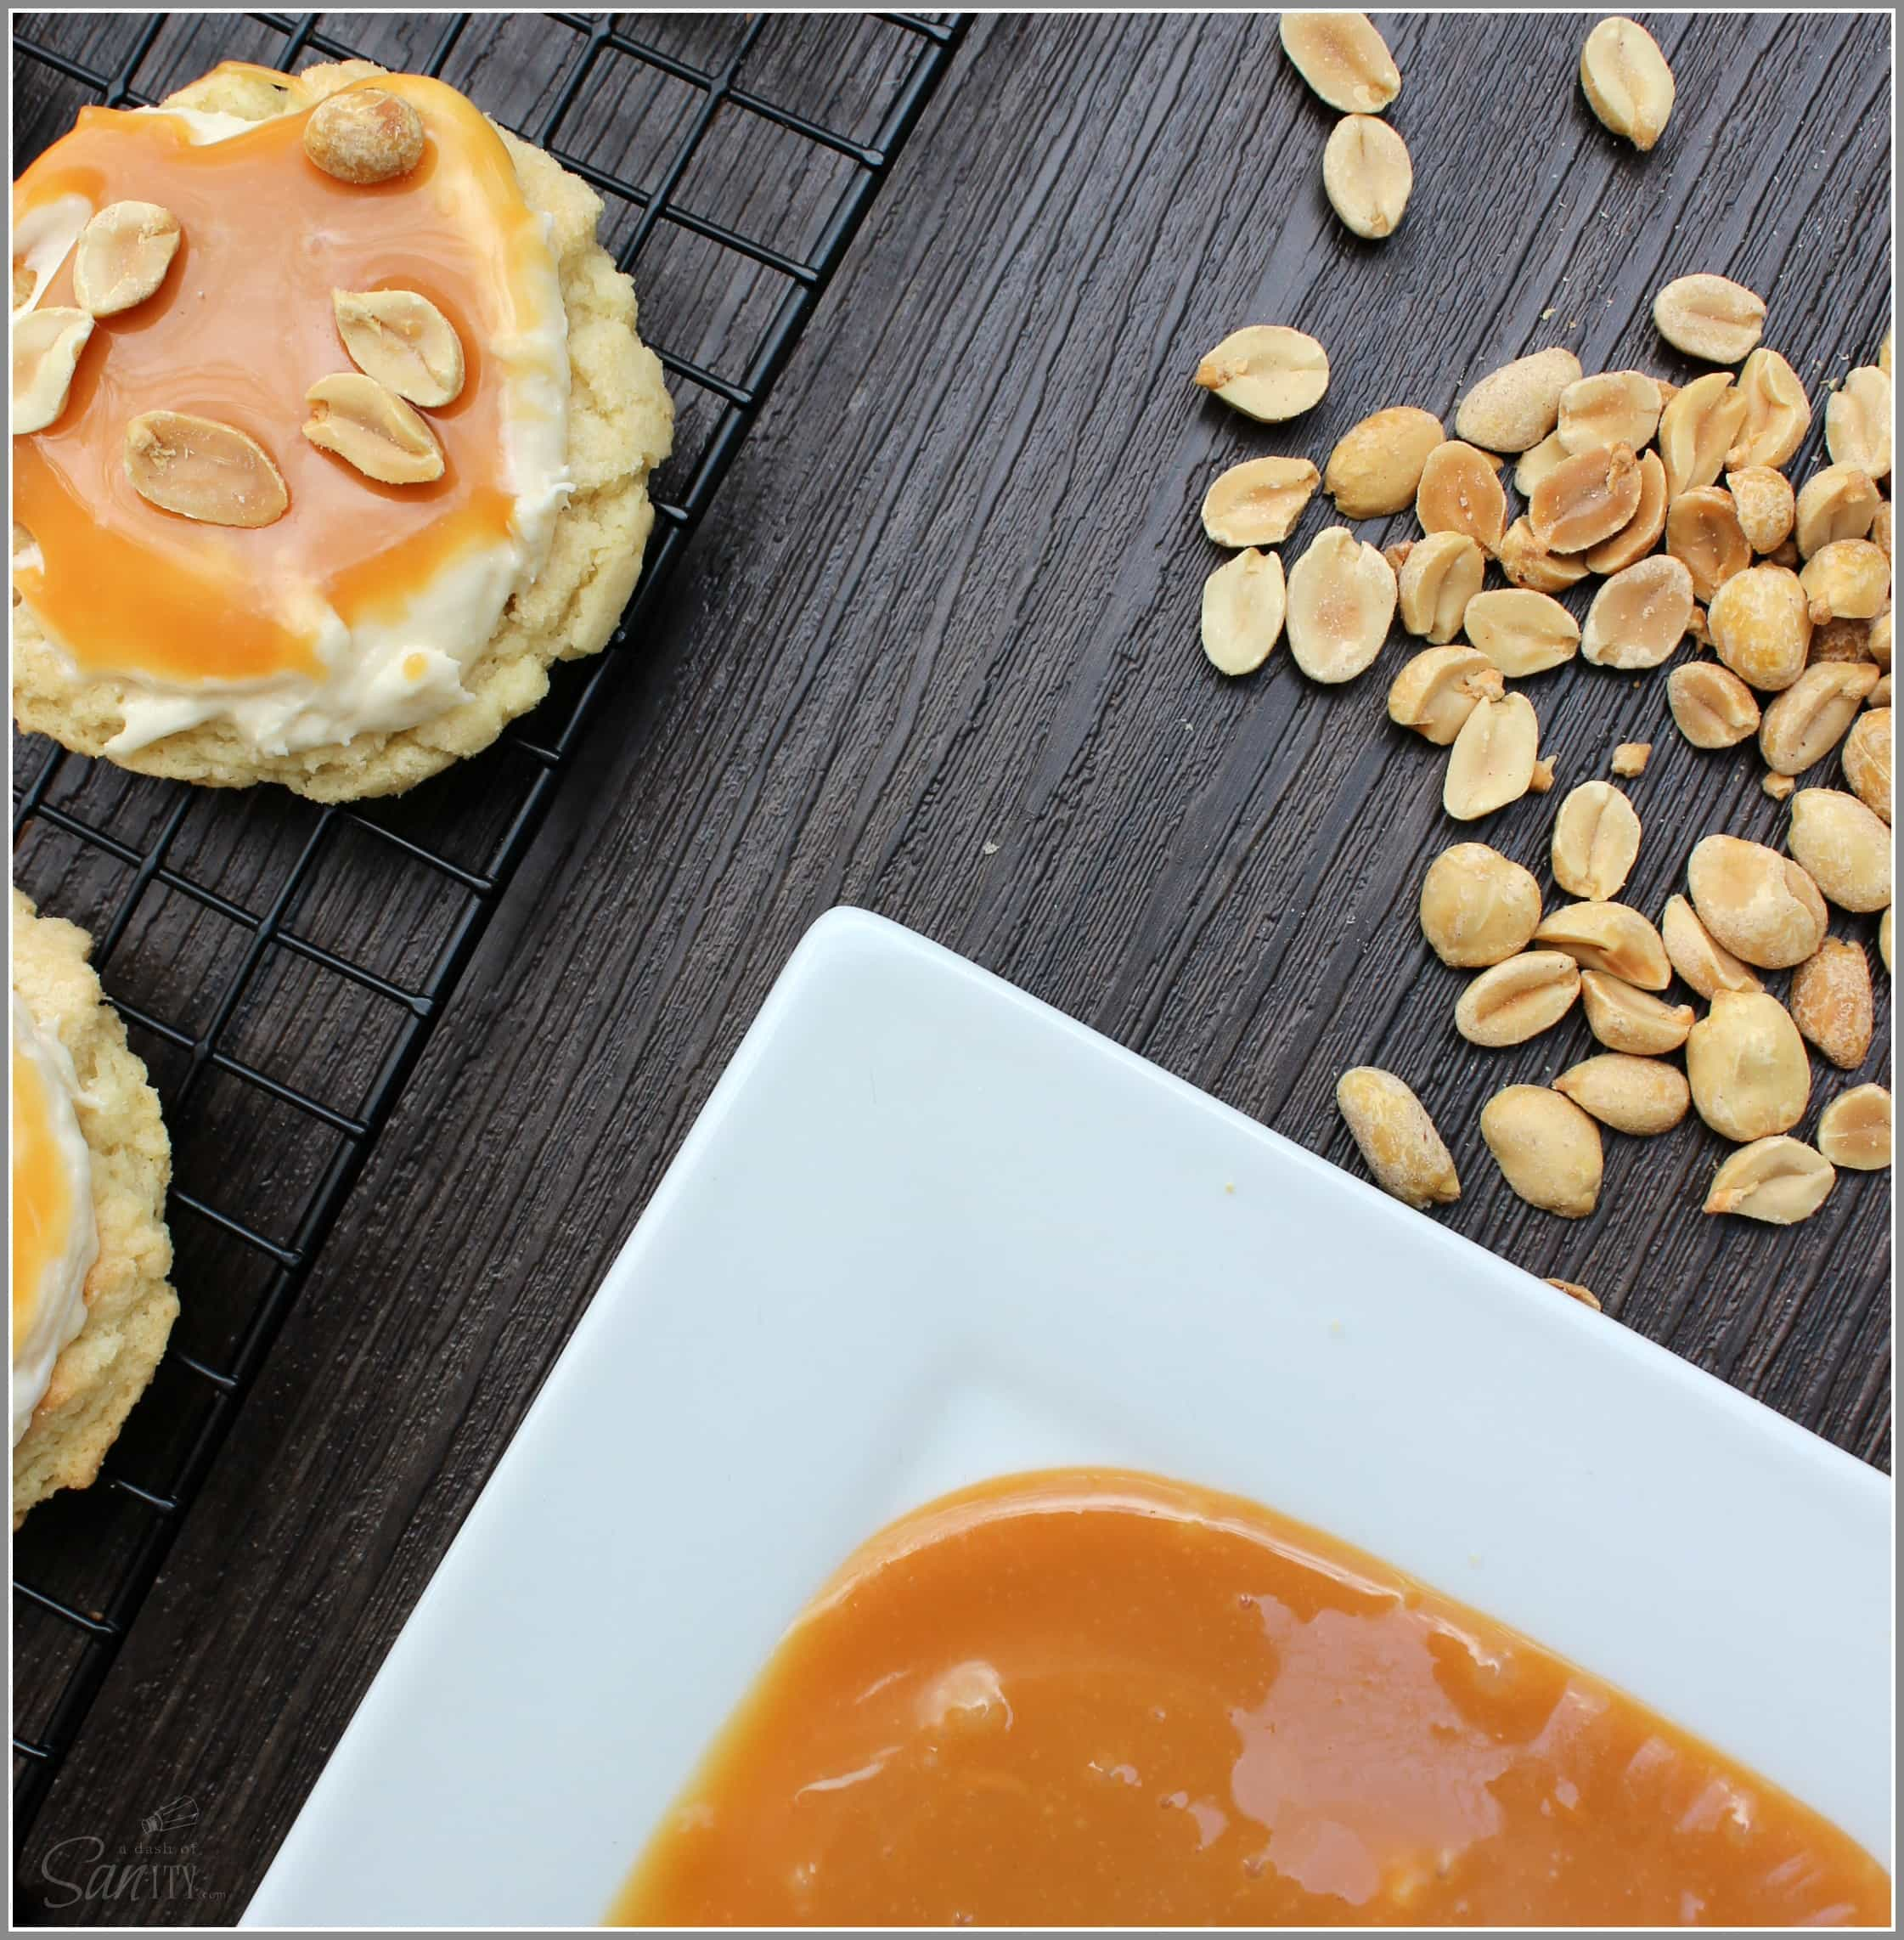 SNICKERS-doodle Cookies are a sweet combination of a classic candy bar favorite, with caramel, chocolate, peanuts, and a creamy nougat center.